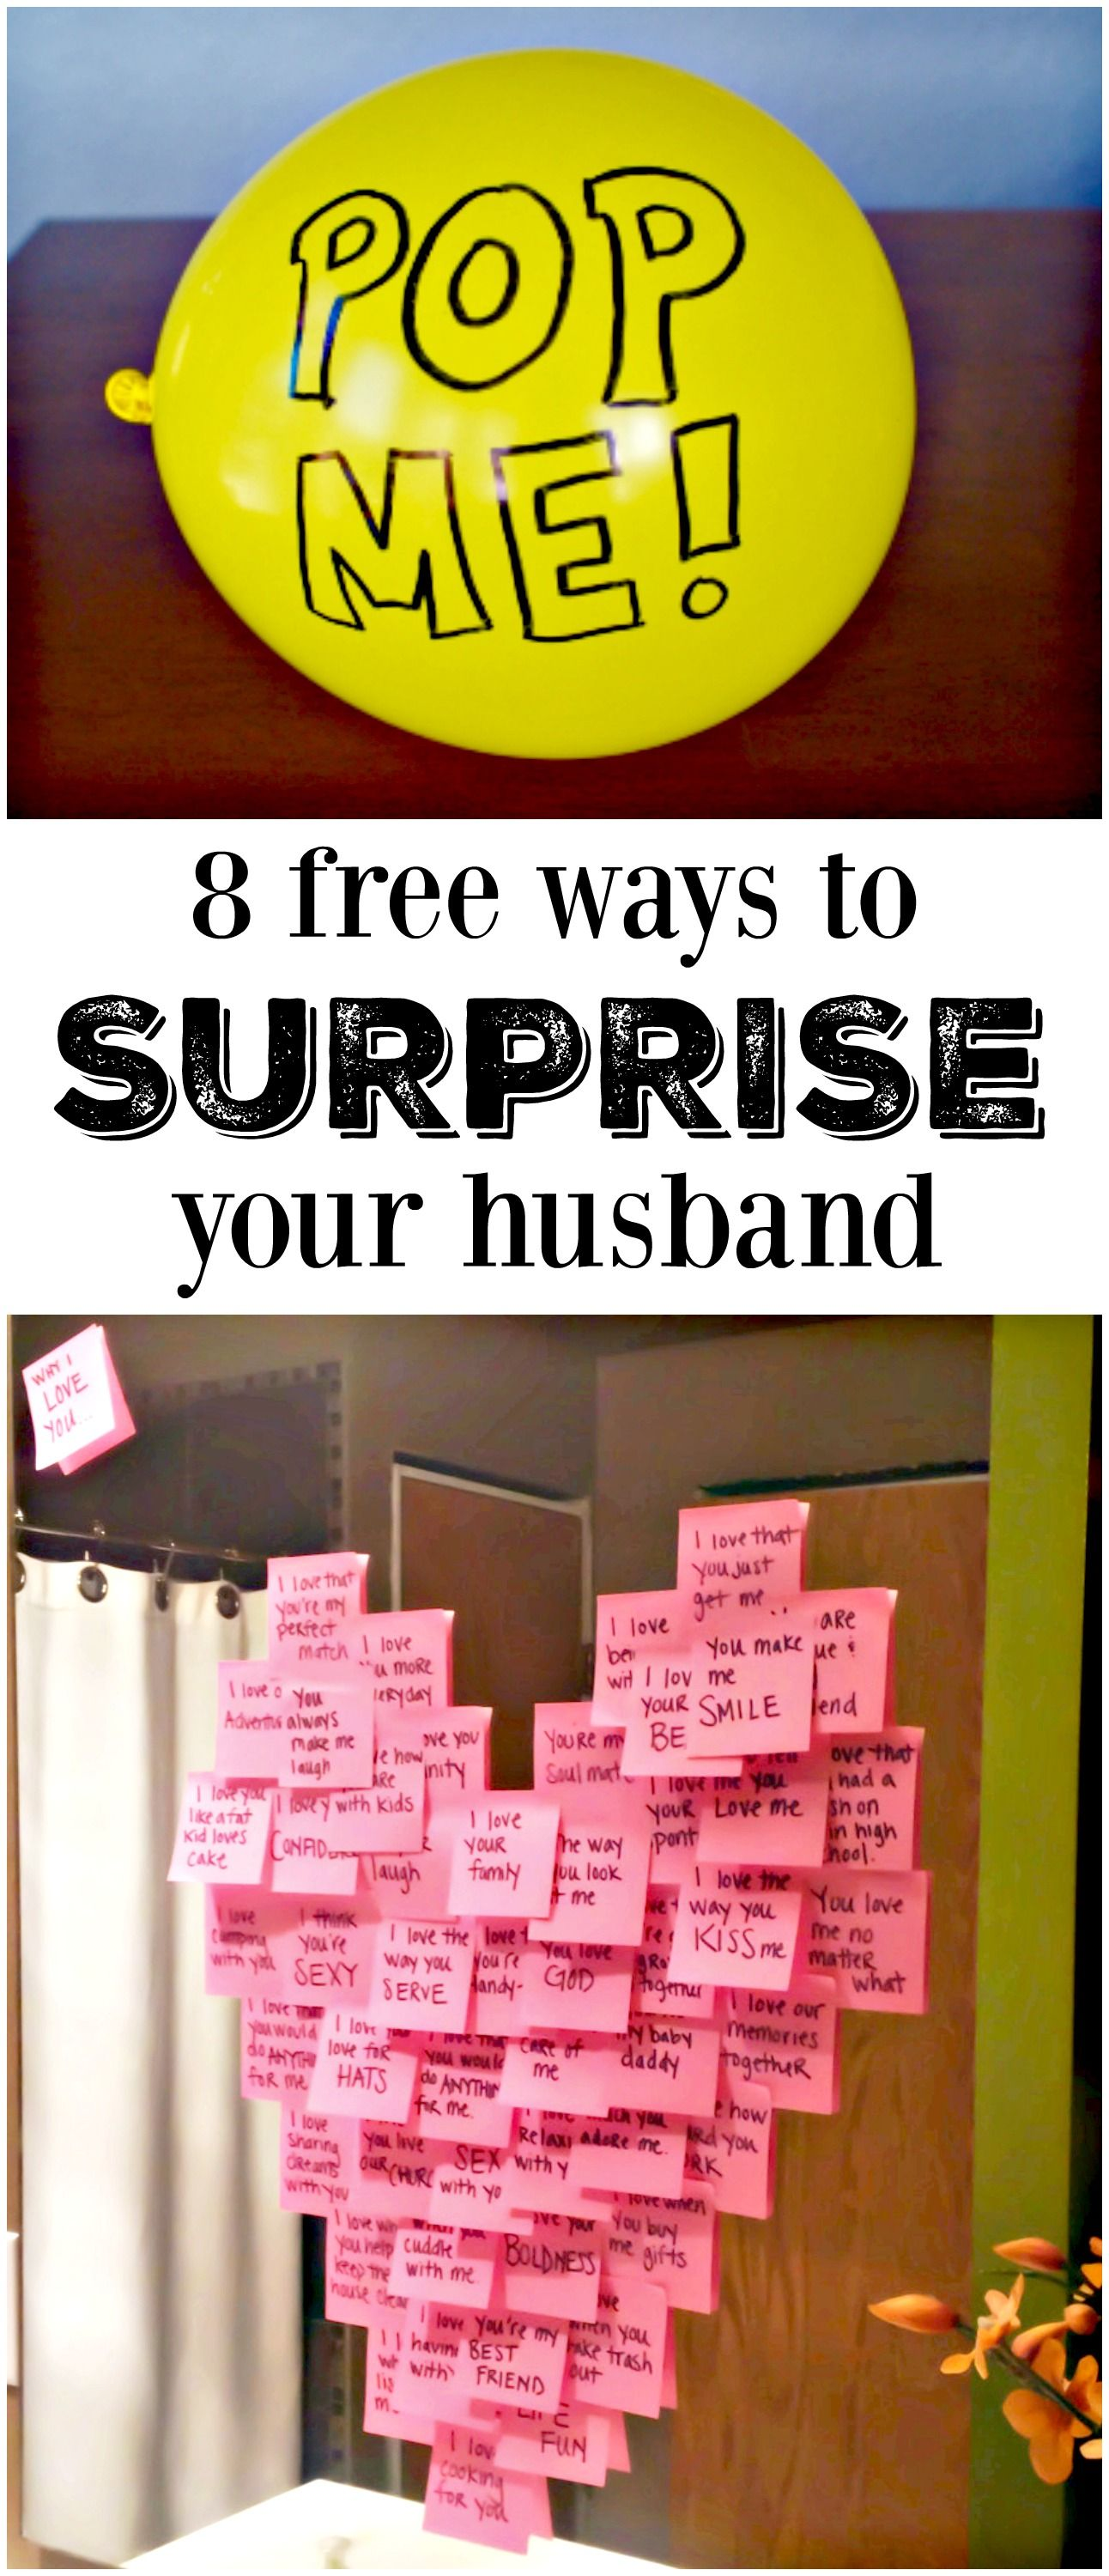 8 Meaningful Ways to Make His Day DIY Ideas Pinterest